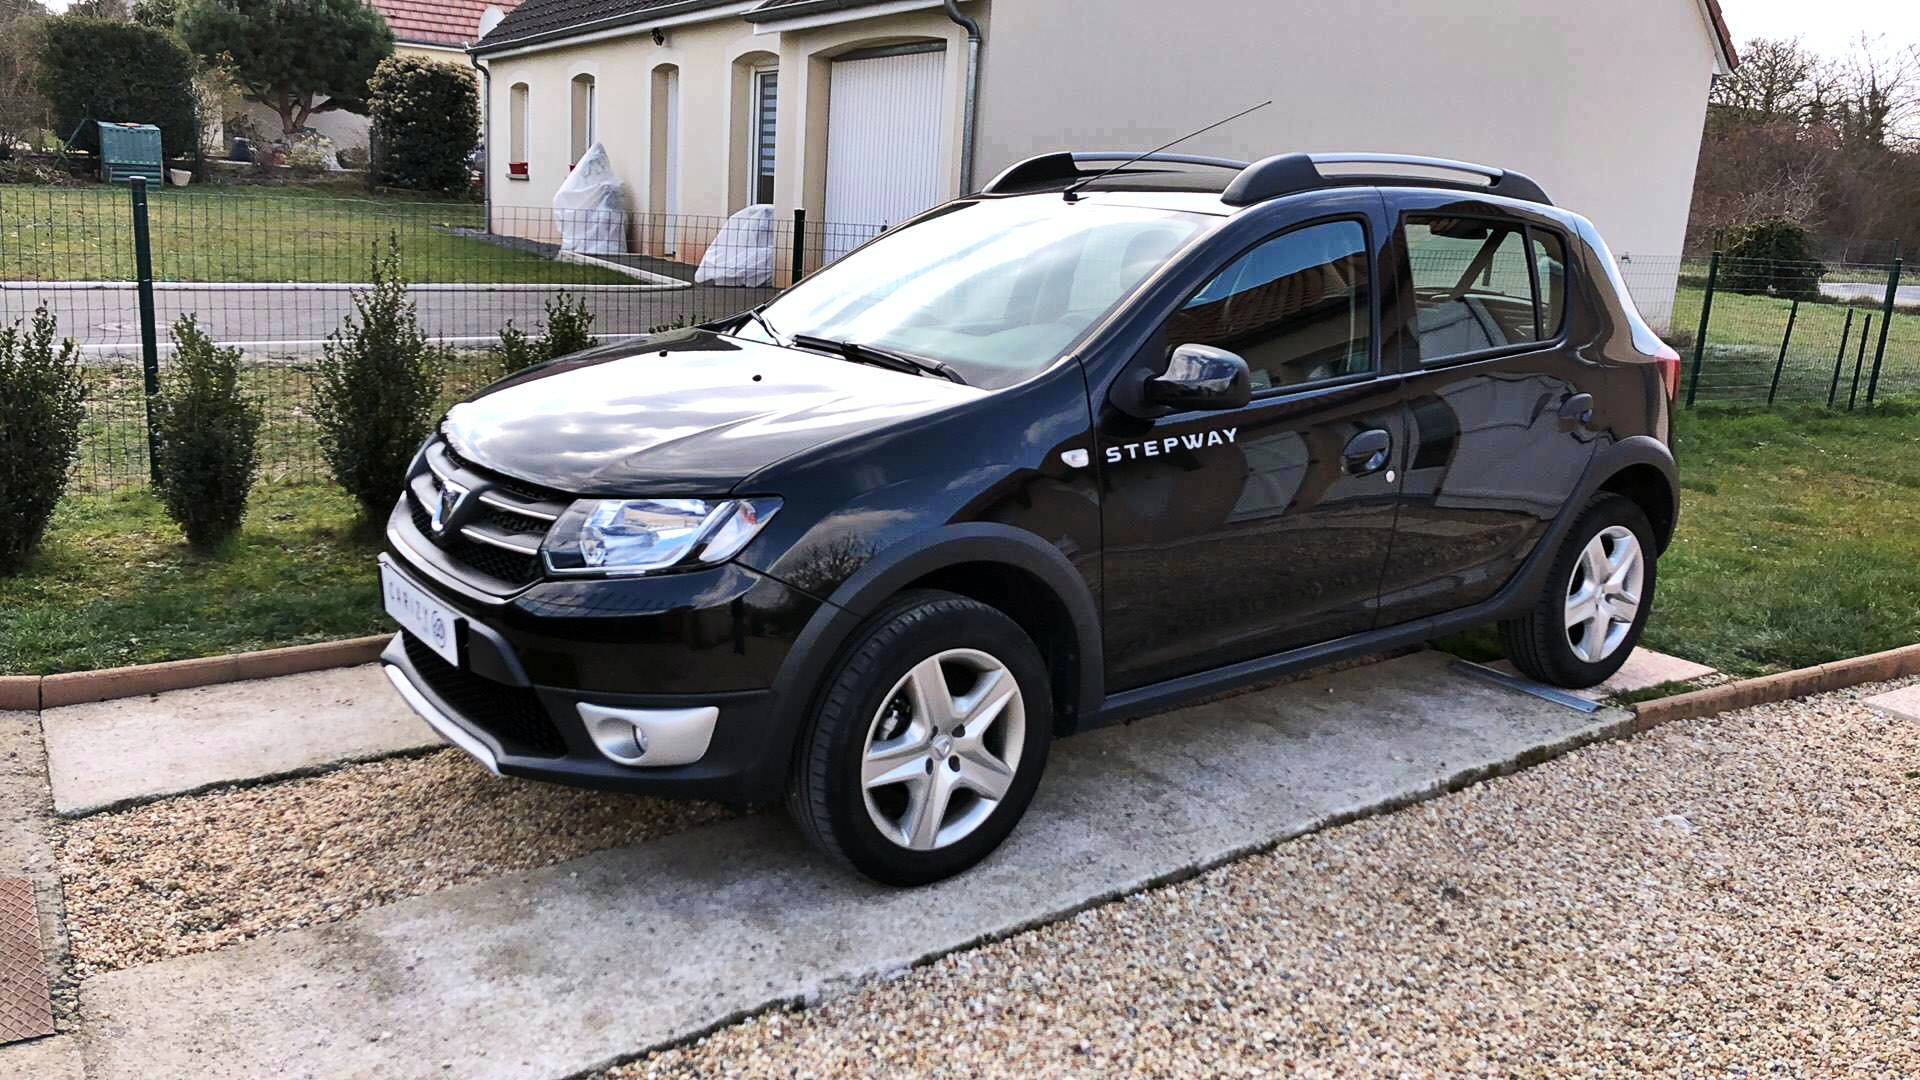 dacia sandero d 39 occasion stepway 0 9 tce 90 prestige saint germain du puy carizy. Black Bedroom Furniture Sets. Home Design Ideas